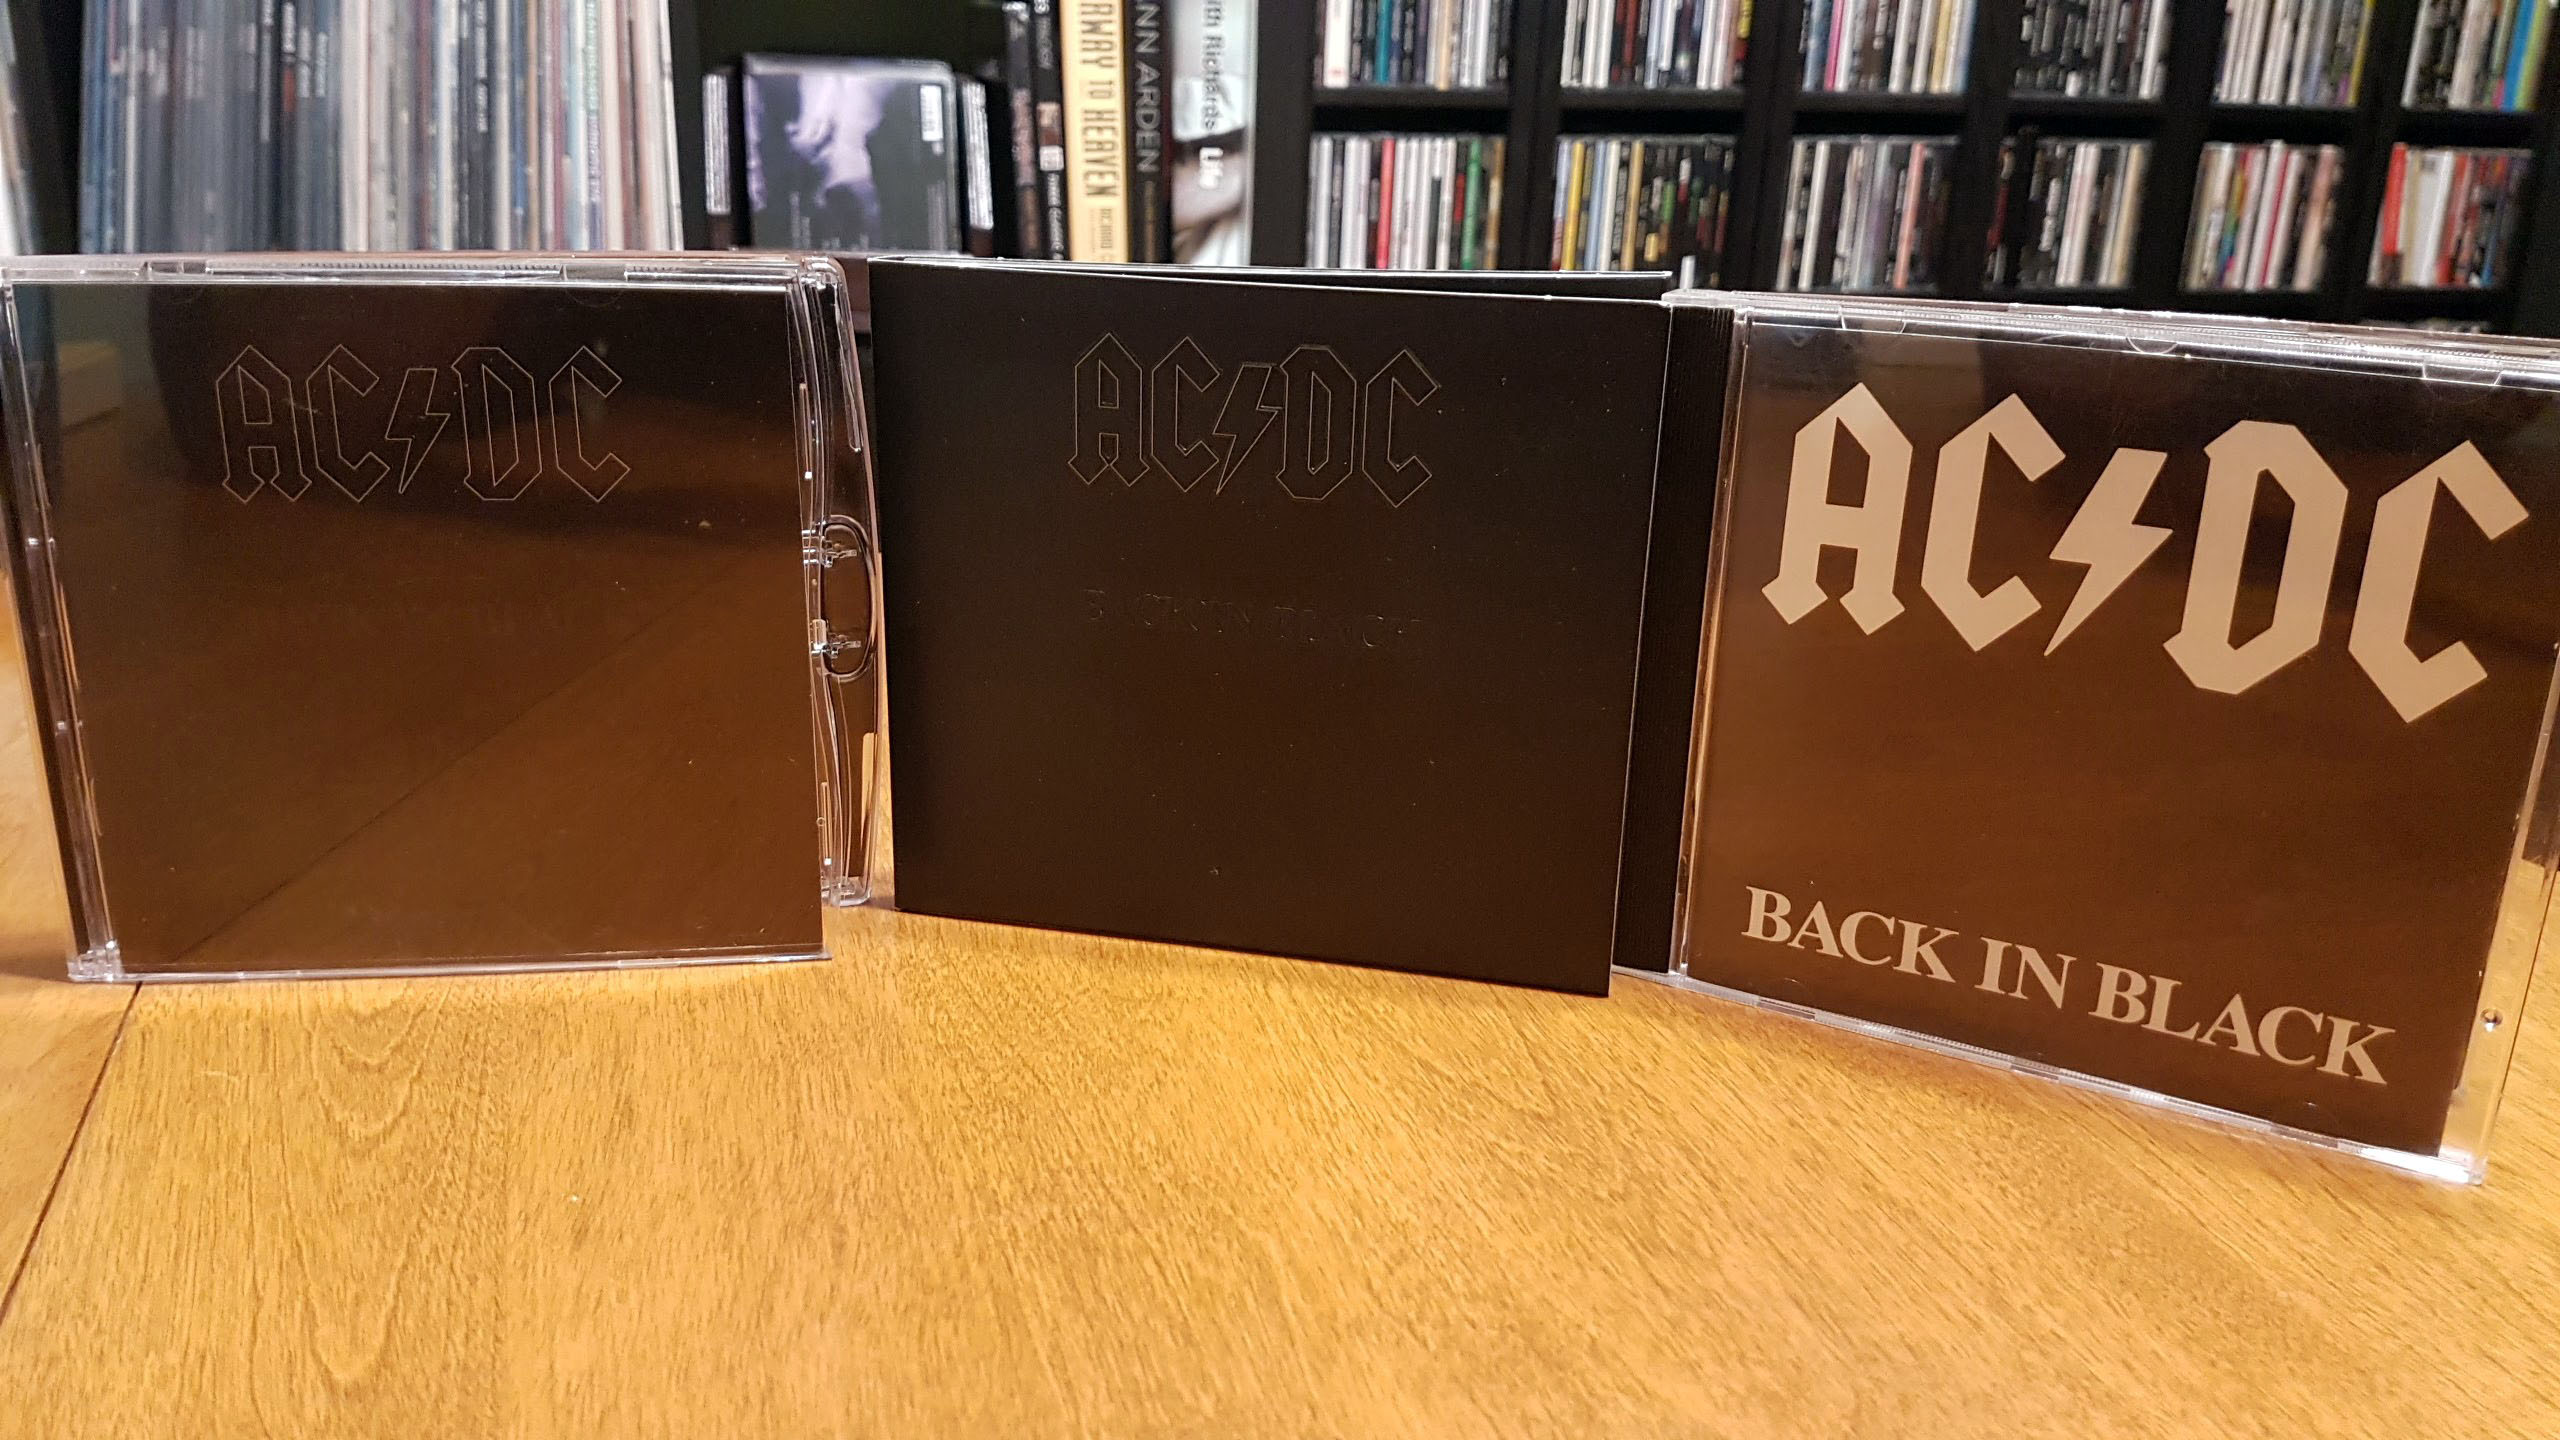 back in black dualdisc lineup